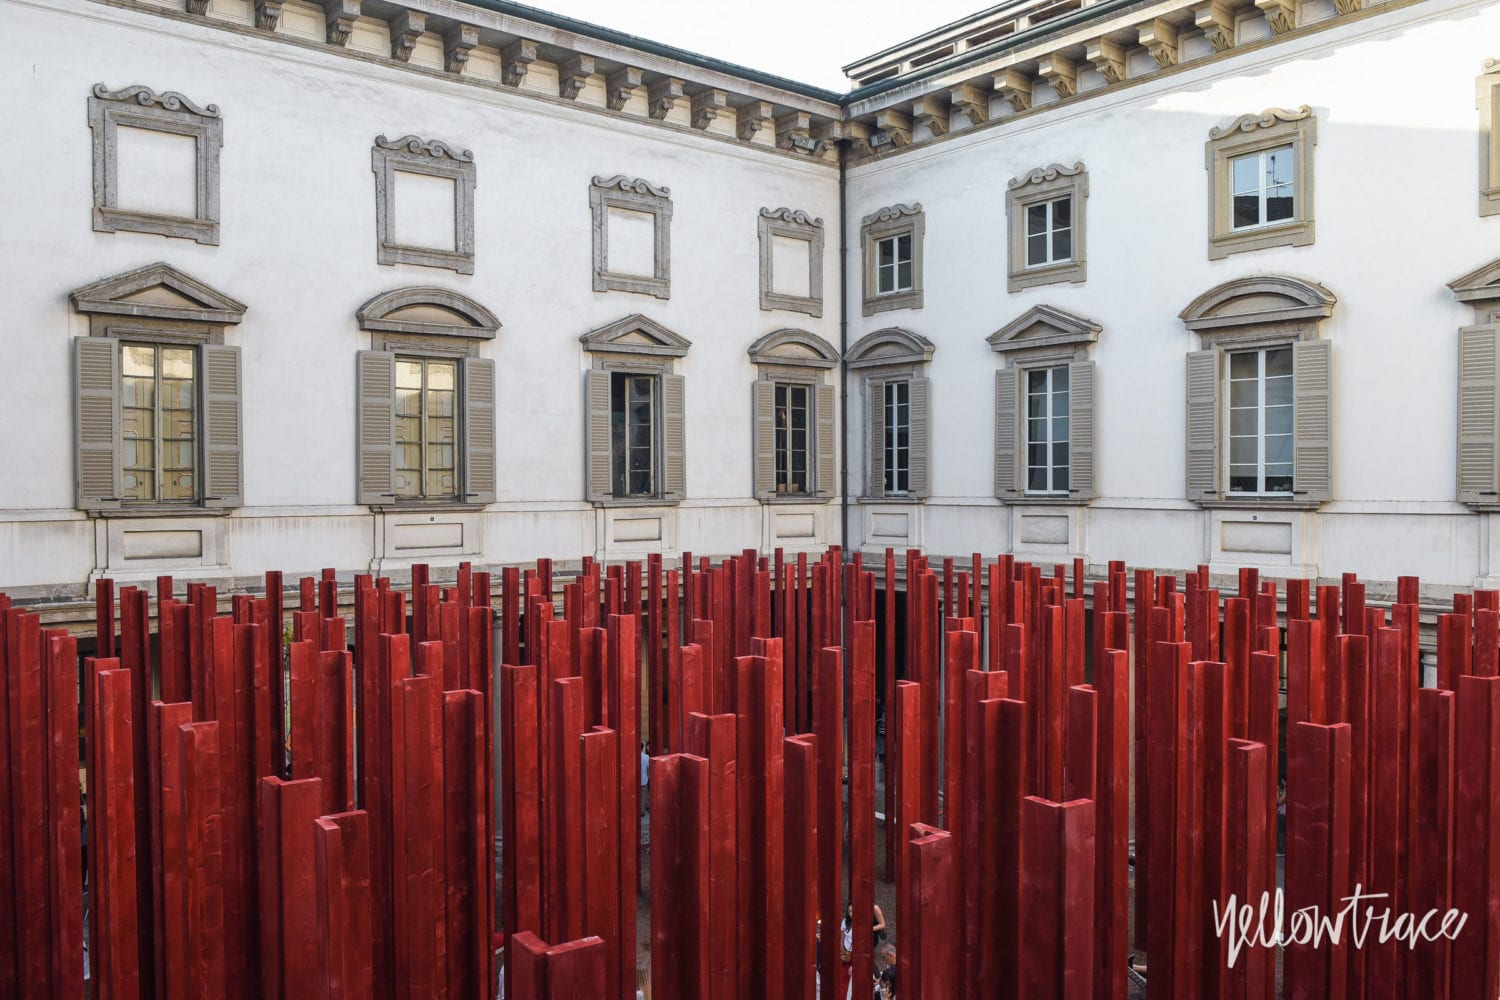 Milan Design Week 2018 Highlights, 'Tempietto nel Bosco' installation by Asif Khanat Palazzo Litta. Photo © Nick Hughes | #Milantrace2018